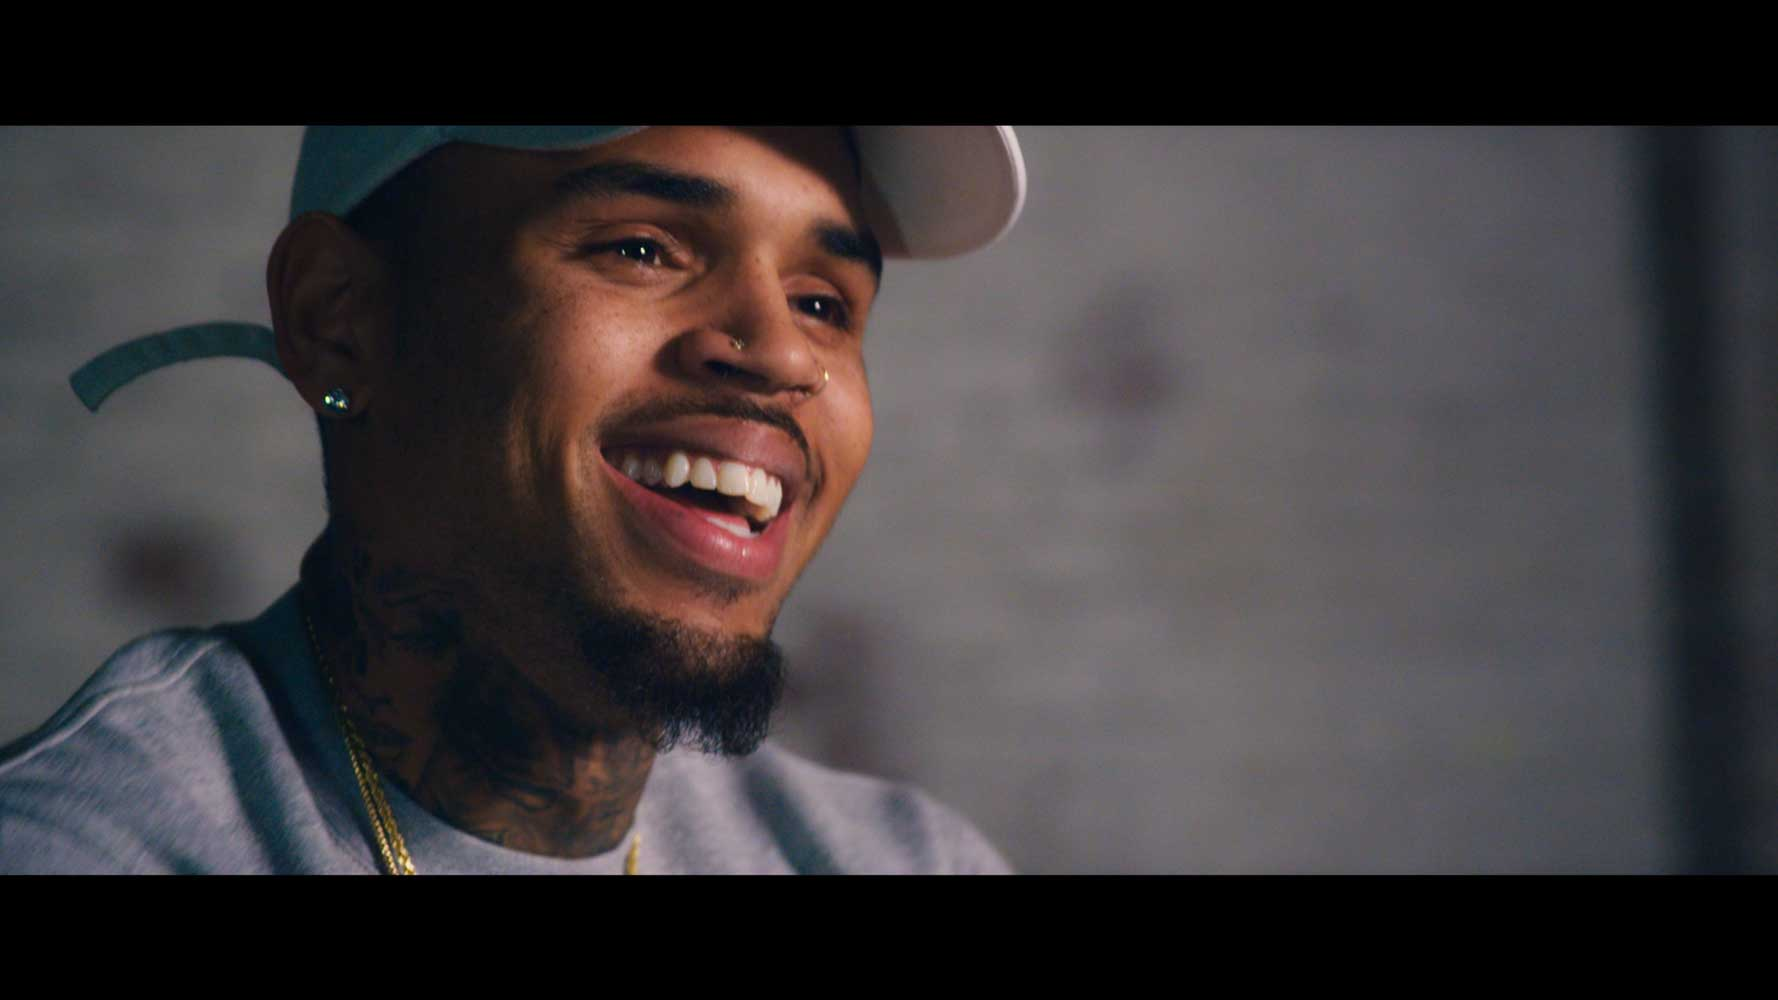 Chris Brown's 'Welcome to My Life' Hits Netflix